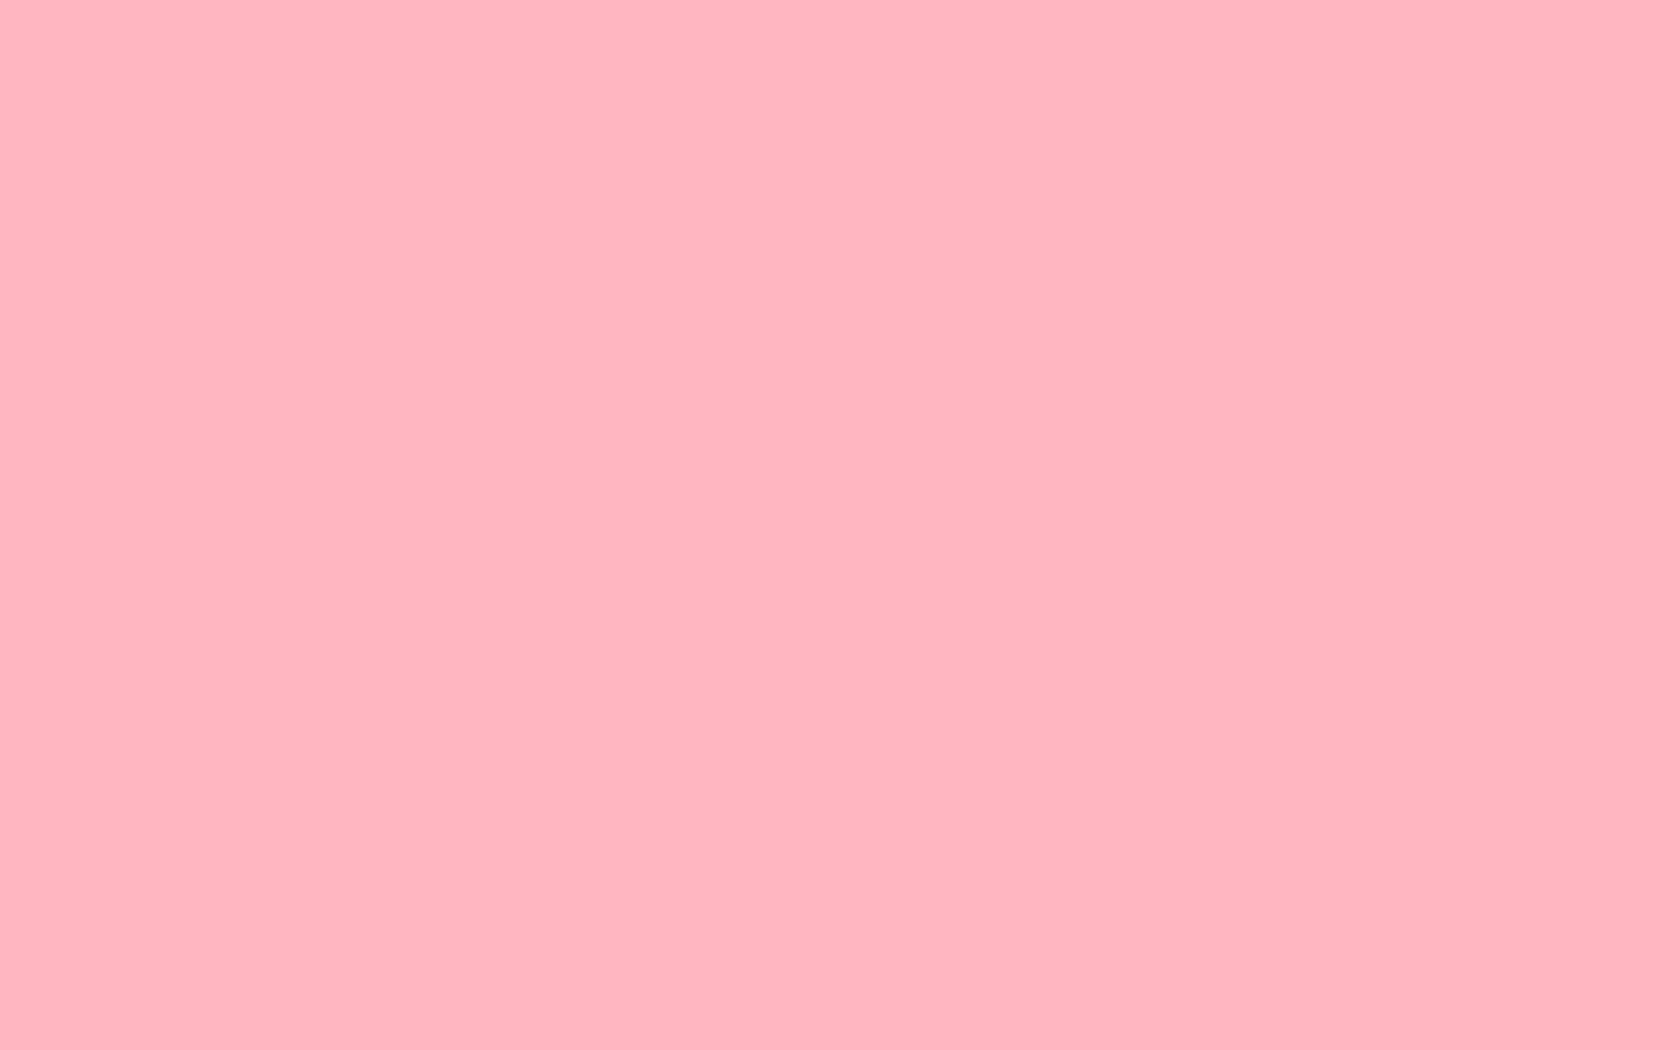 Solid Light Pink Background Tumblr Solid light pink background 1680x1050